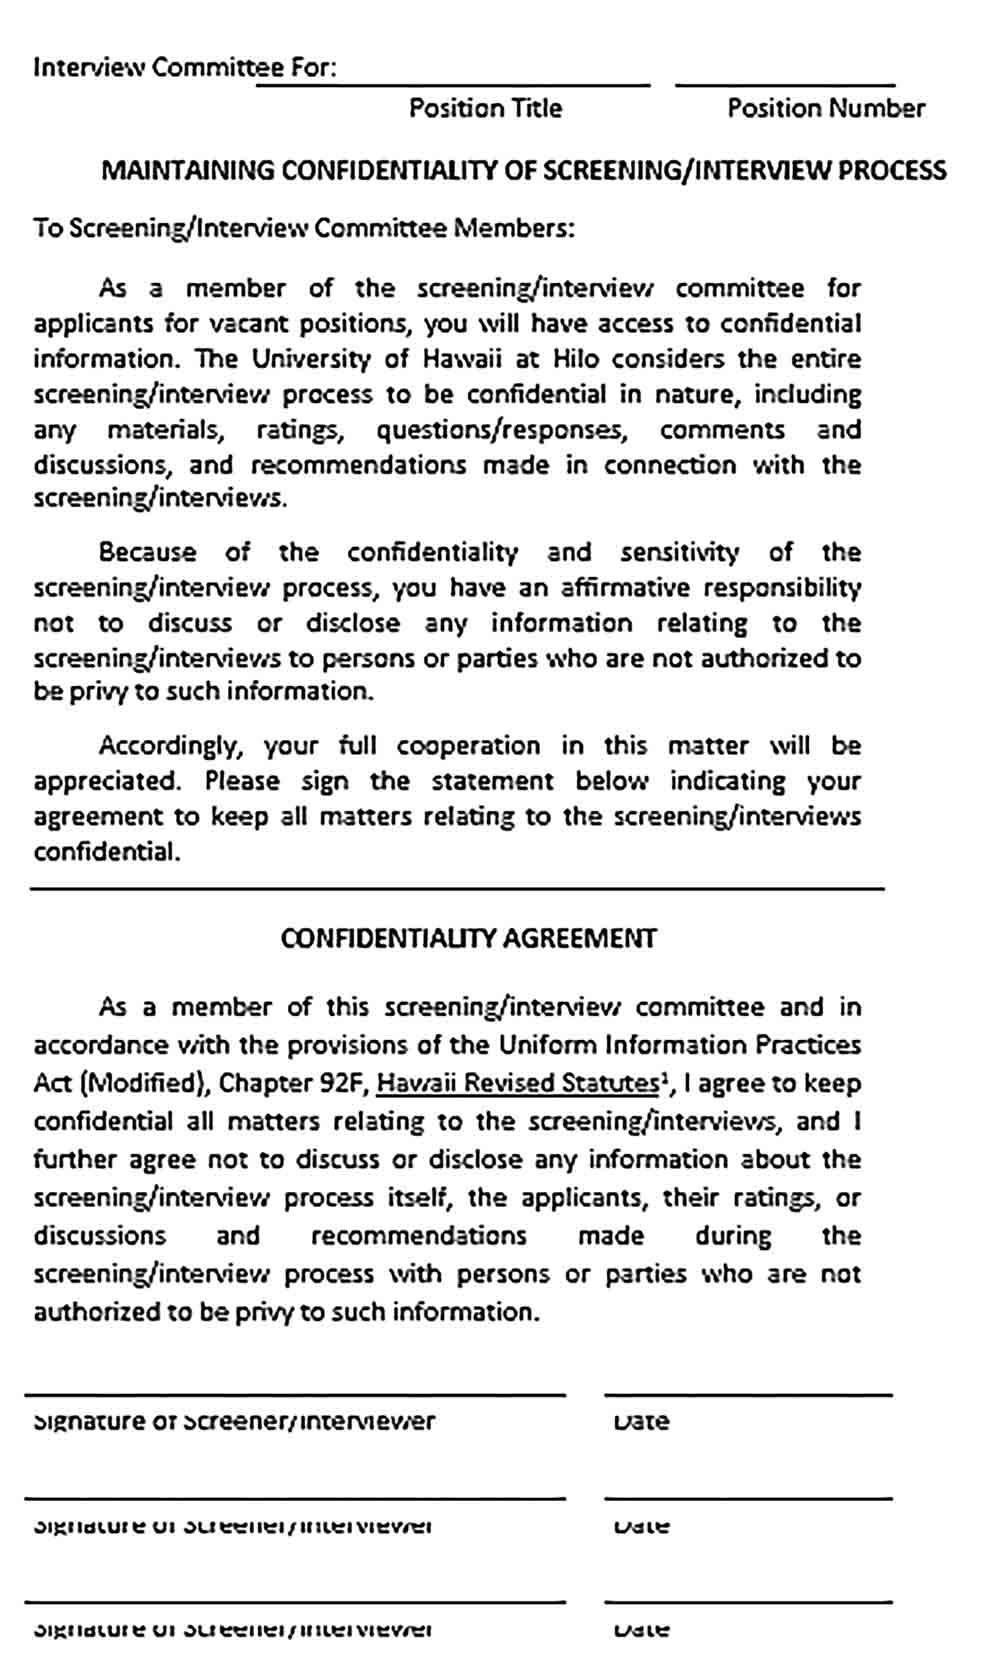 Sample Interview Confidentiality Agreement